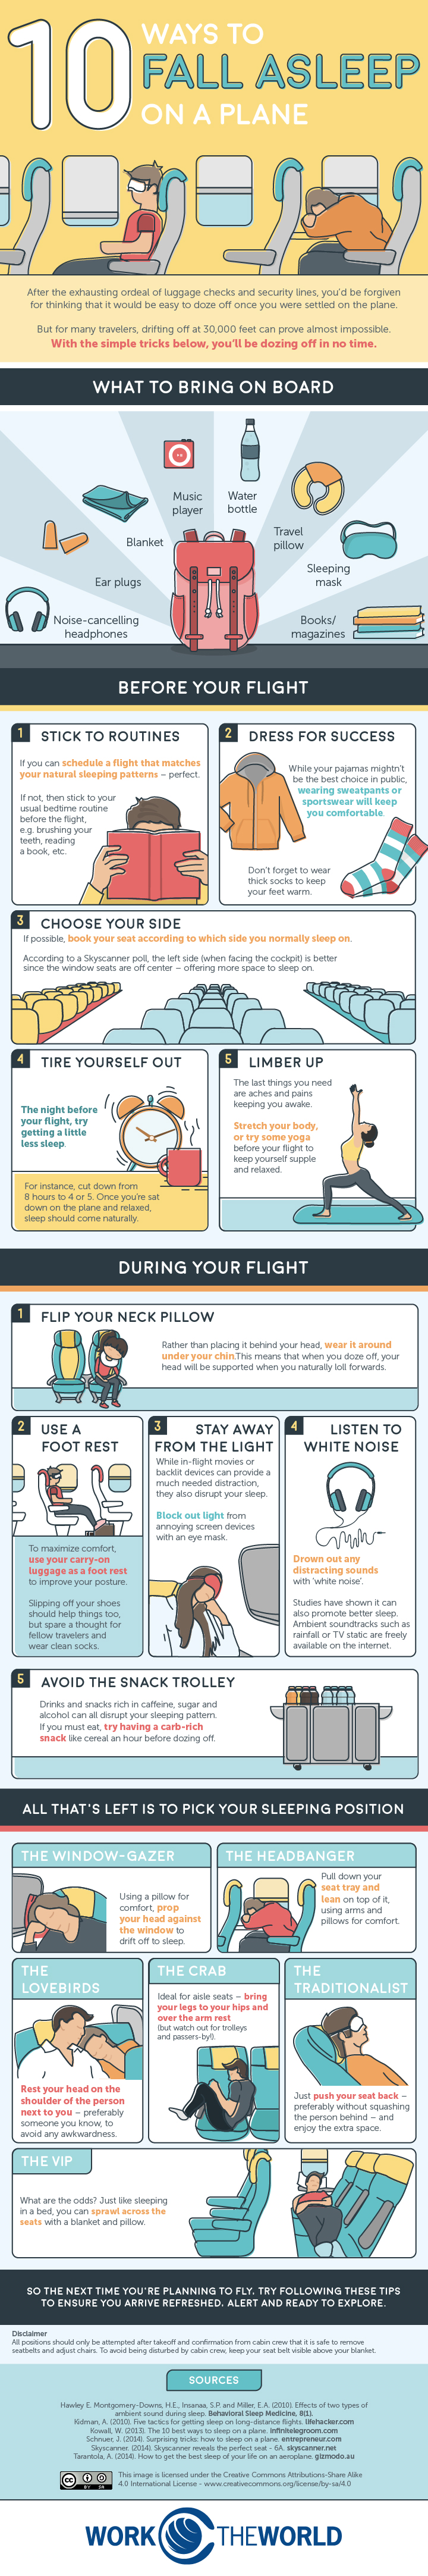 Tips To Fall Asleep On A Plane In 10 Ways Tipsographic